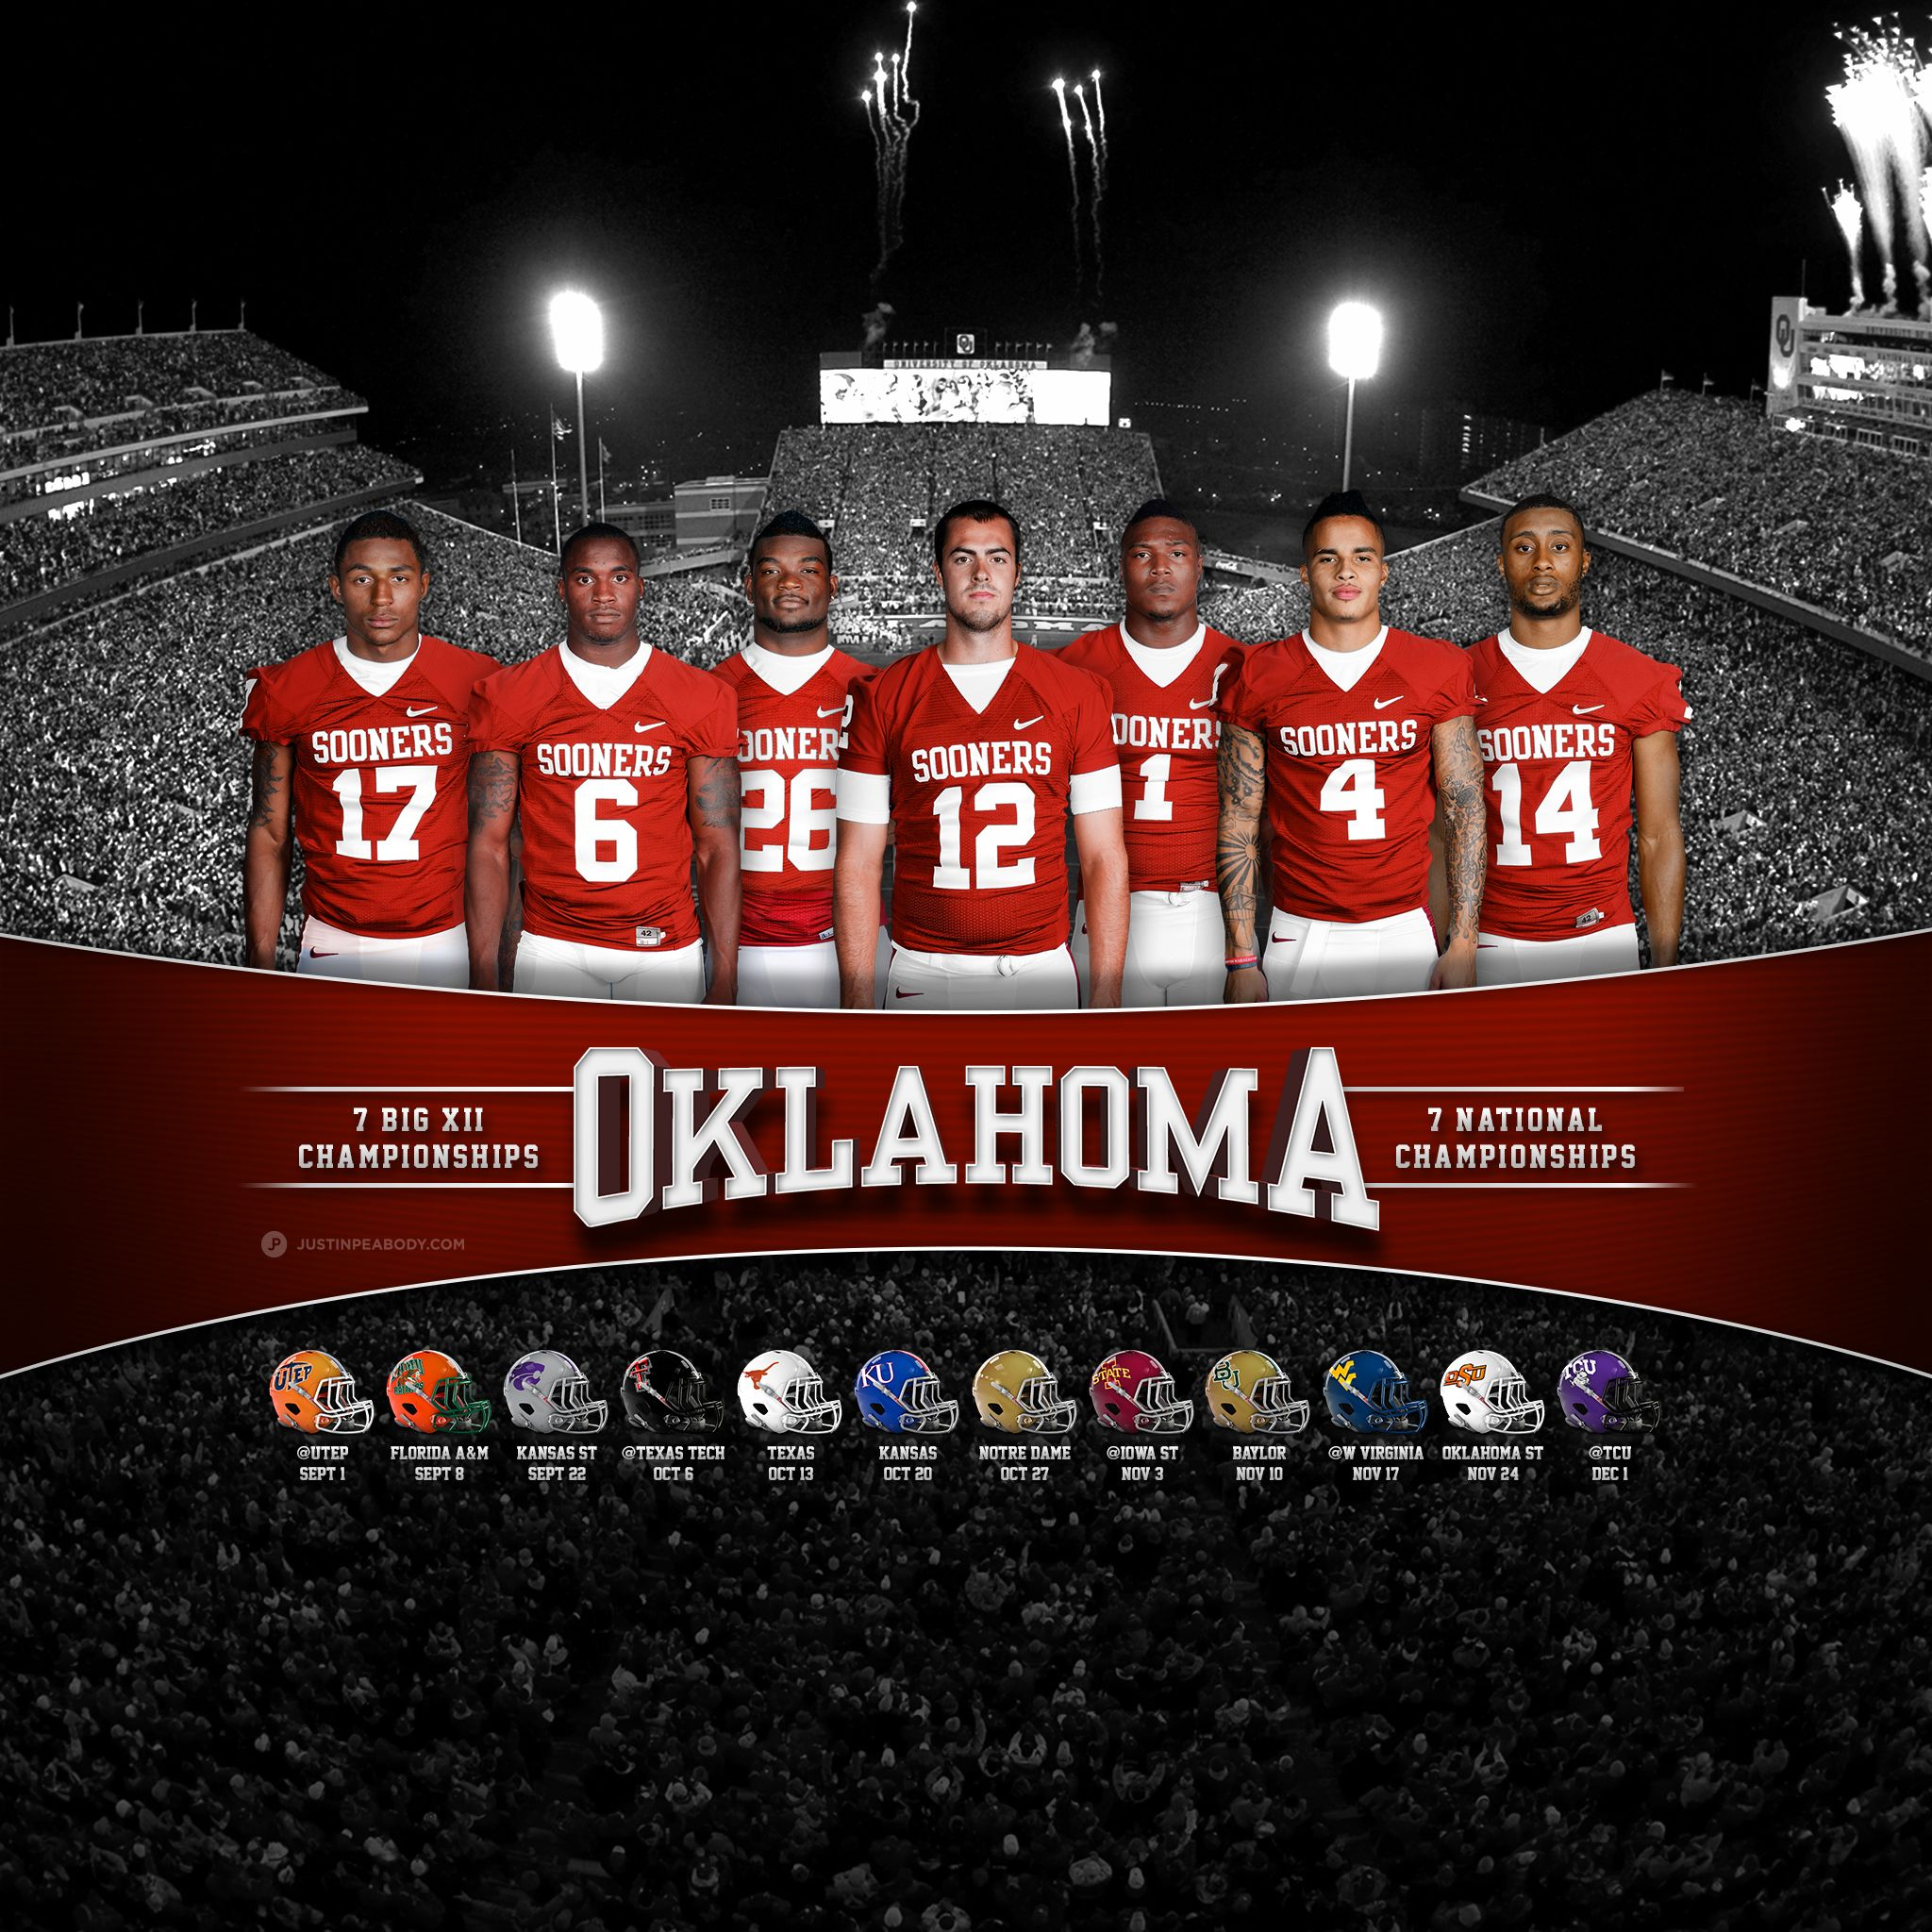 Ou Wallpaper Oklahoma Sooners Wallpapersafari Sooners Oklahoma Sooners Oklahoma